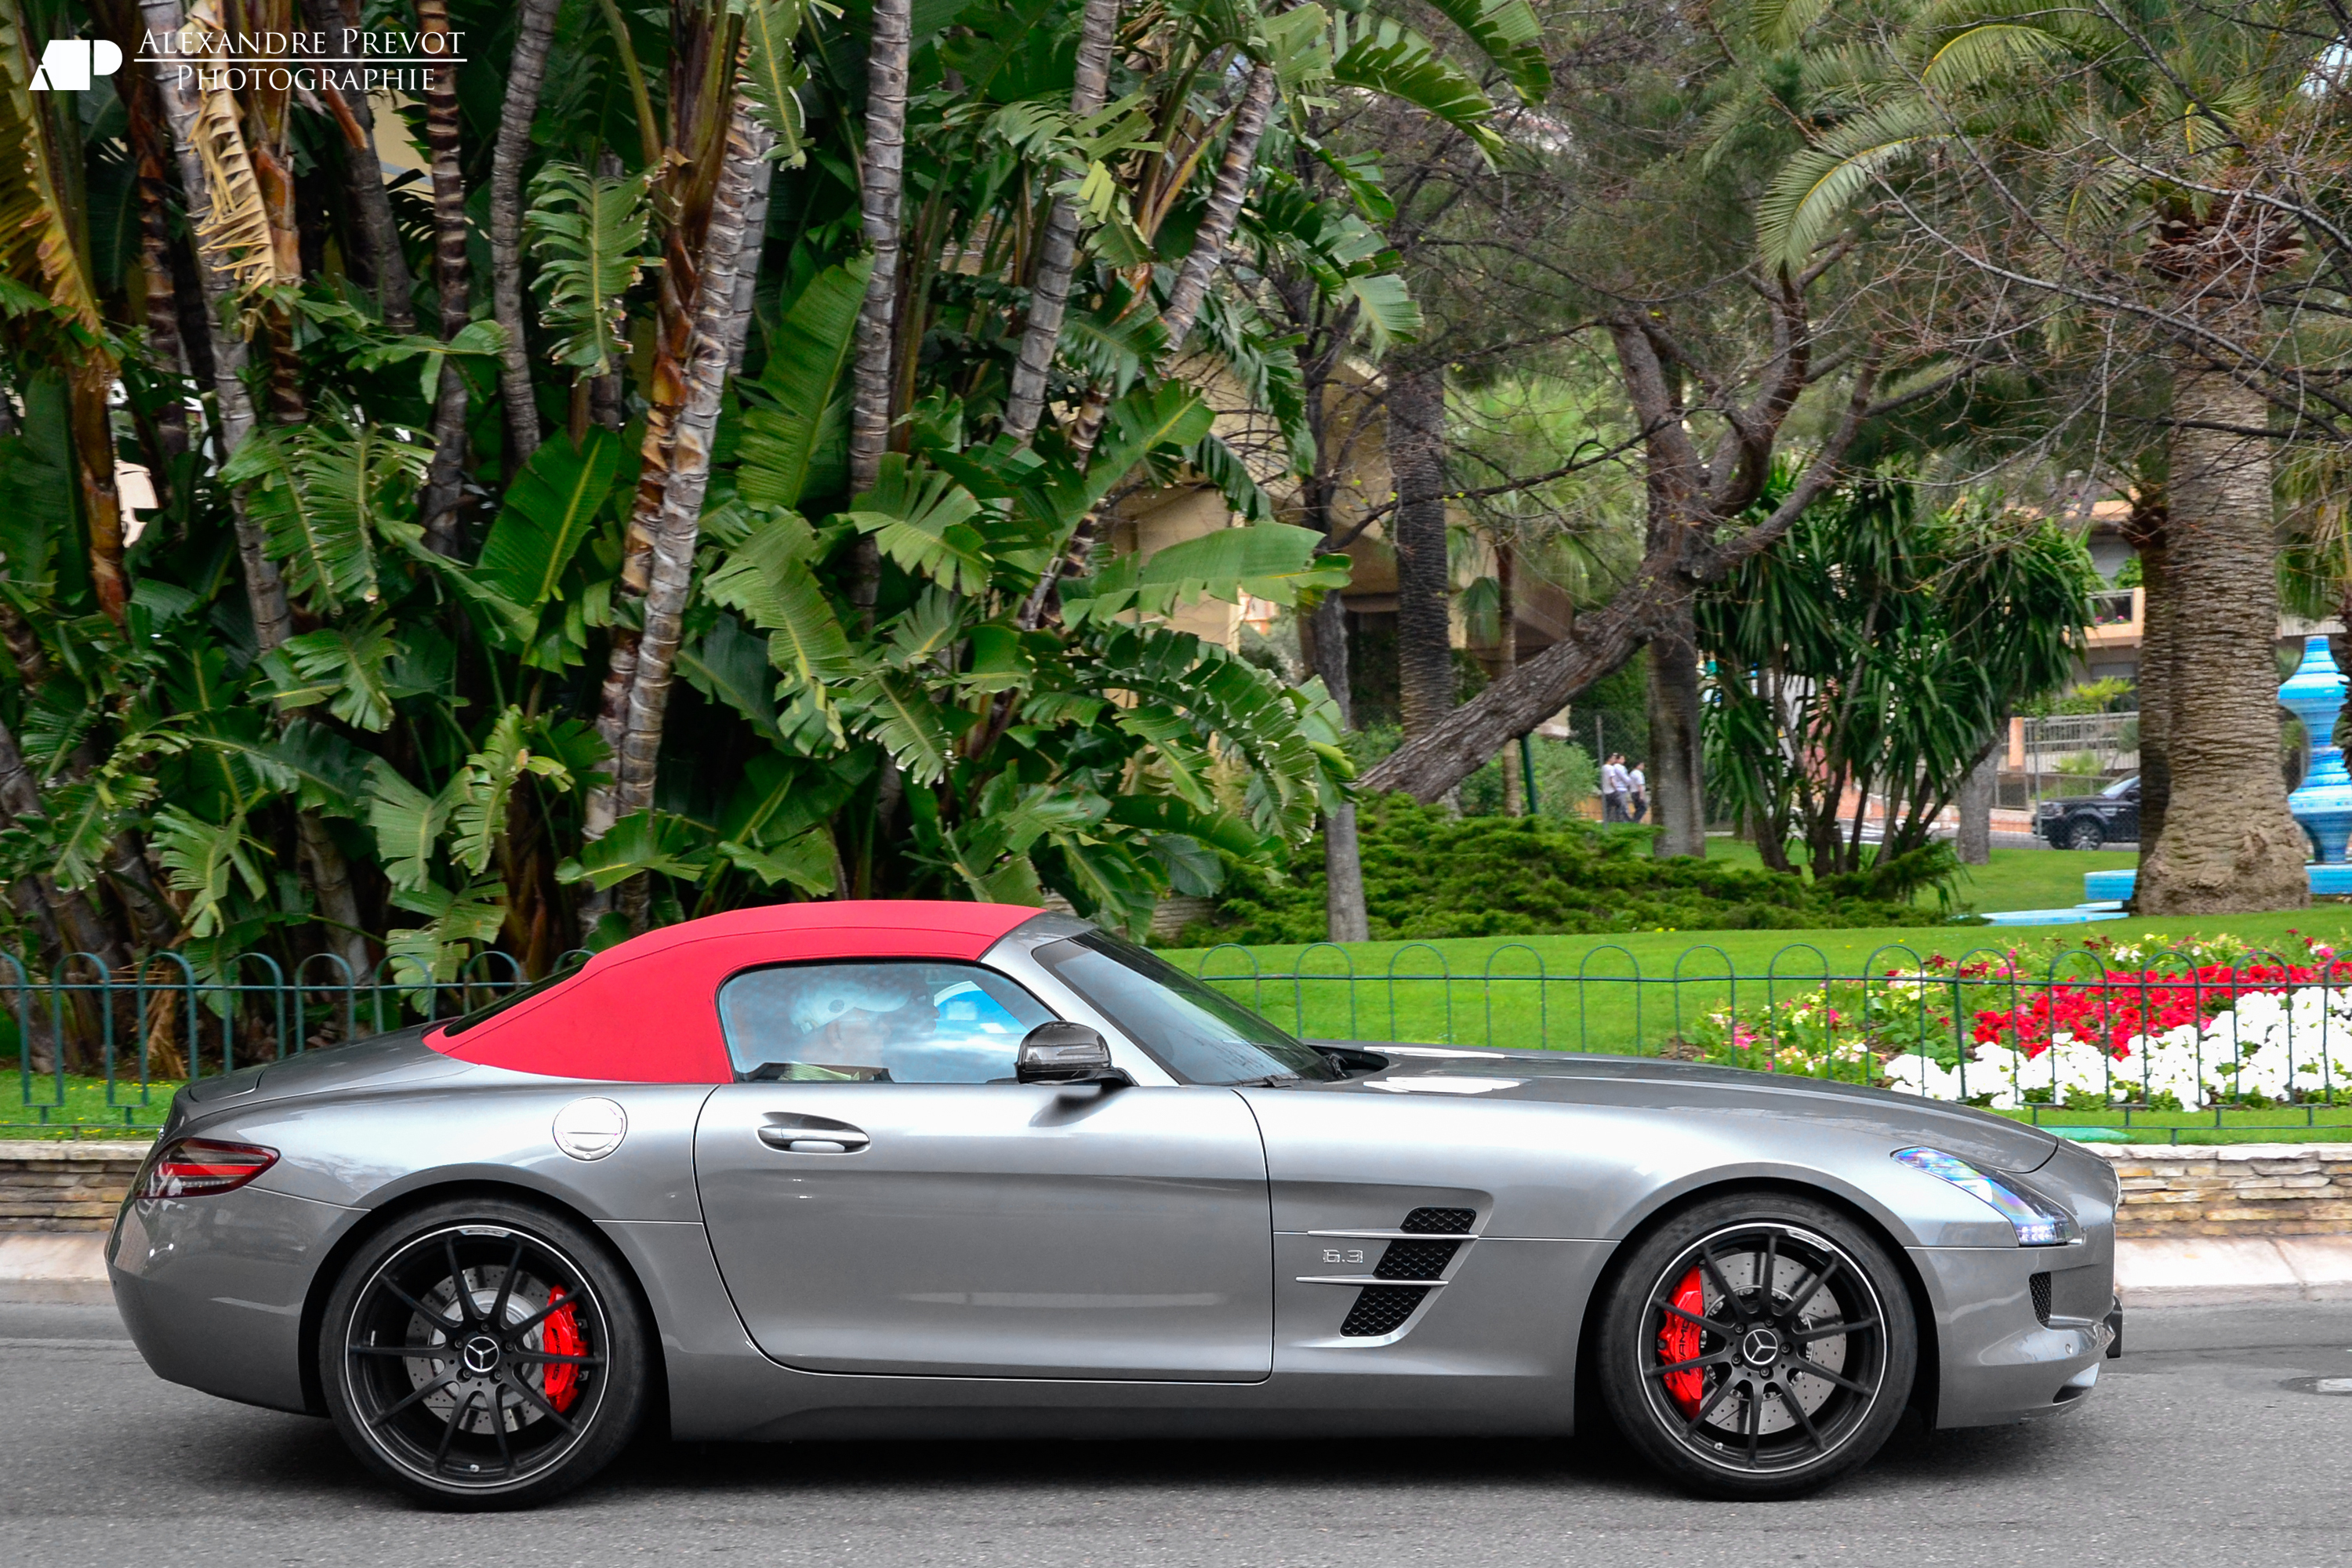 Filemercedes benz sls amg roadster 8682046869g wikimedia commons filemercedes benz sls amg roadster 8682046869g publicscrutiny Choice Image